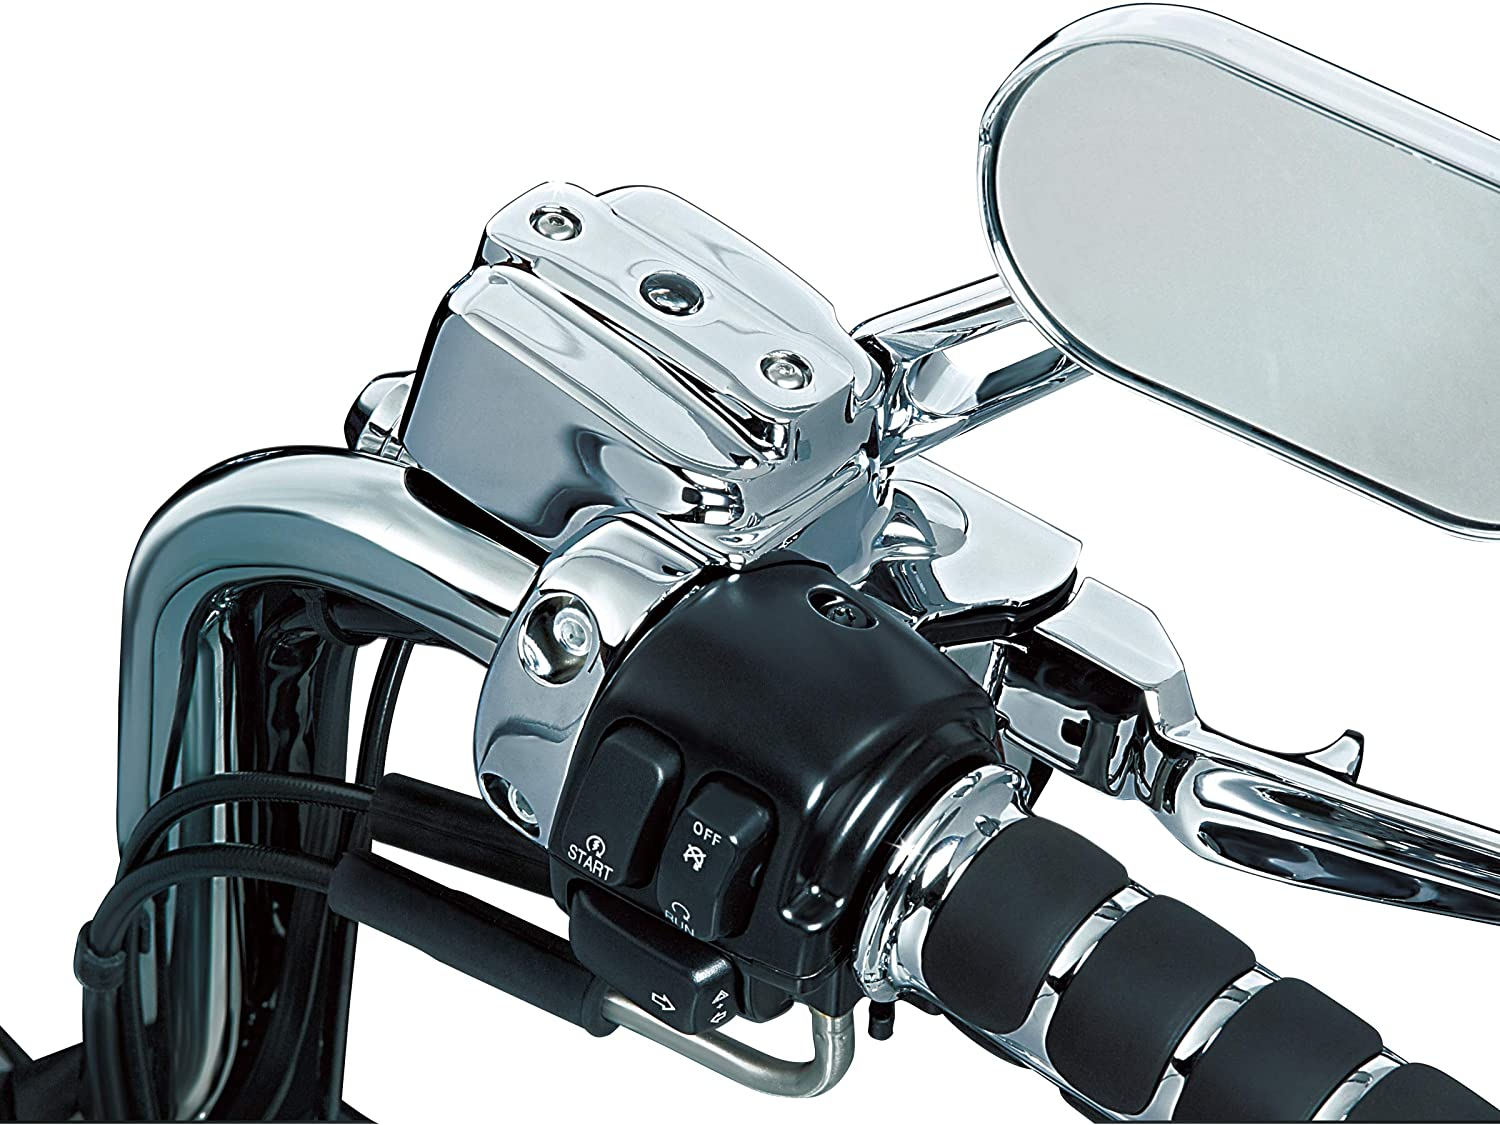 Kuryakyn 9119 Motorcycle Handlebar Accessory Complete Chrome Replacement Brake and Clutch Control Dress-Up Kit for 1996-2017 Harley-Davidson Motorcycles Single Disc